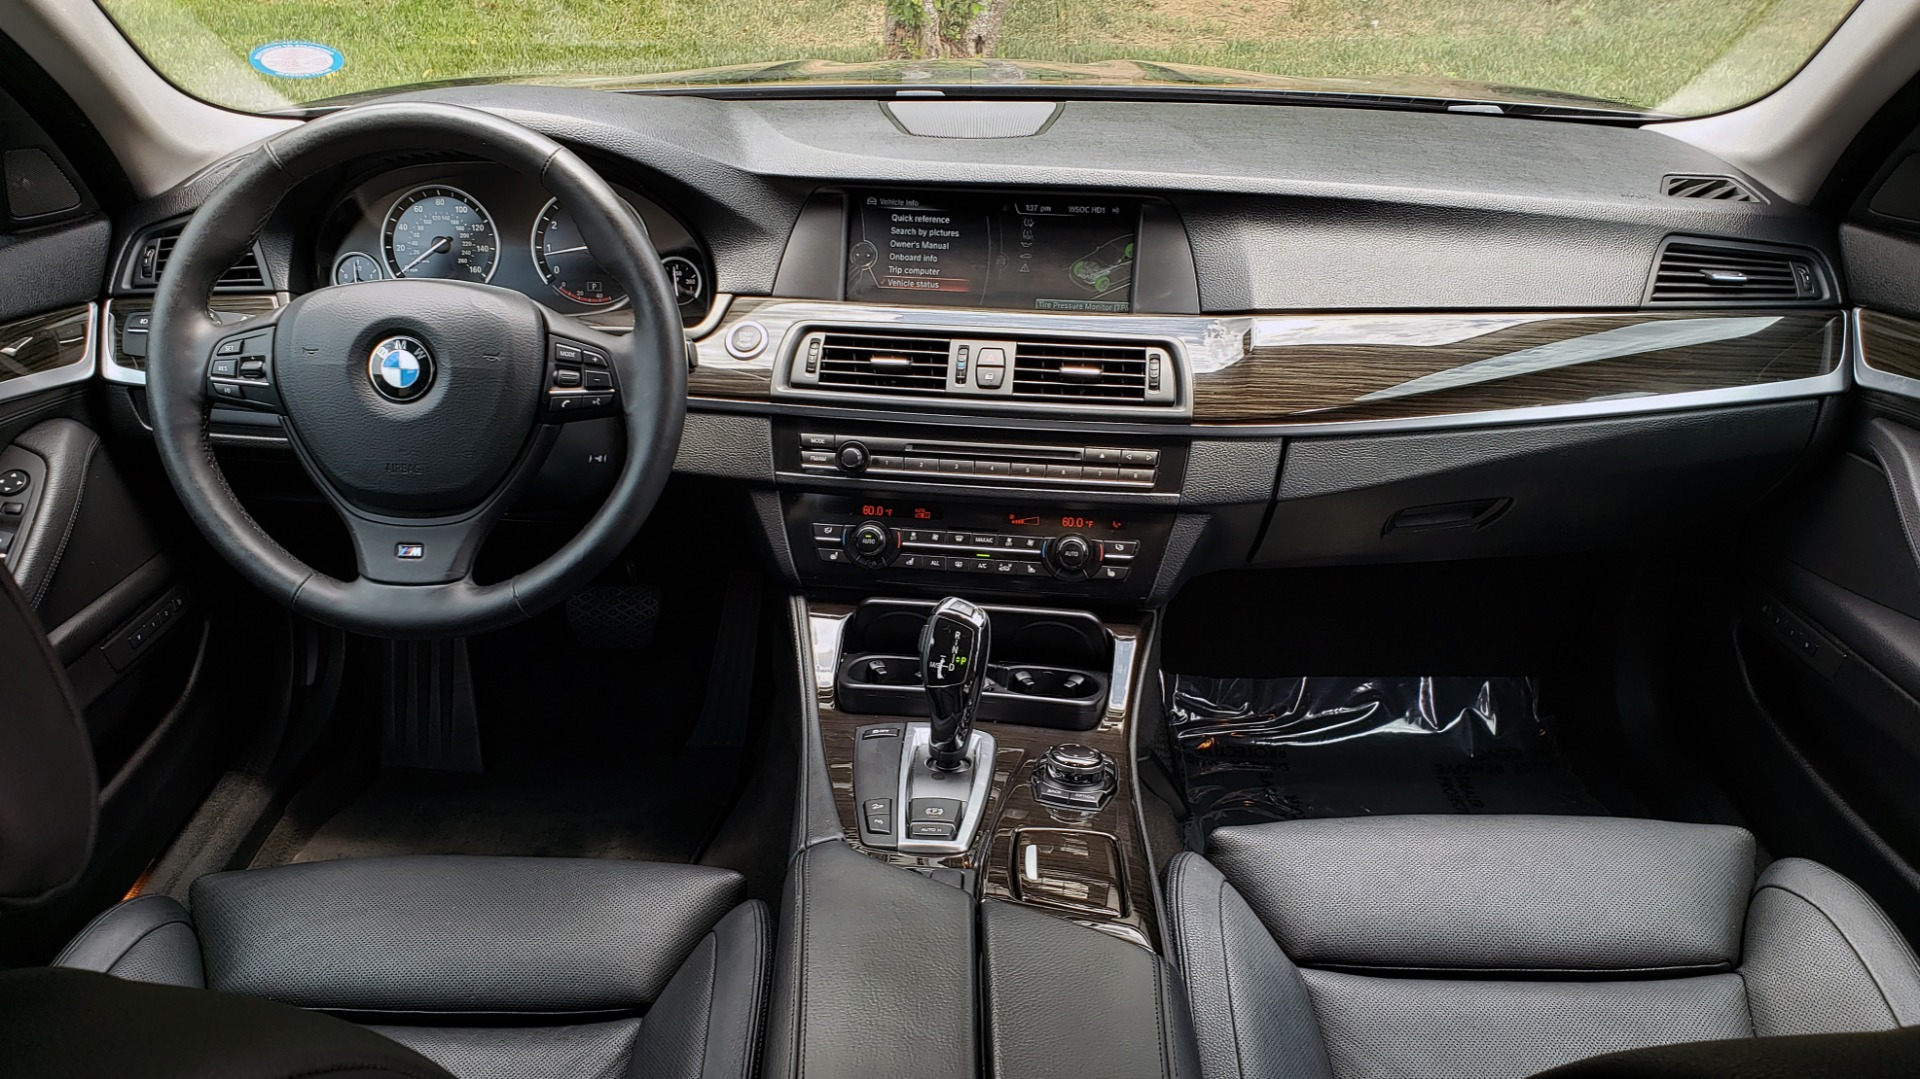 Used 2013 BMW 5 SERIES 550I XDRIVE LUX PKG / EXEC / COLD WTHR / NAV / SUNROOF / REARVIEW for sale $17,995 at Formula Imports in Charlotte NC 28227 70